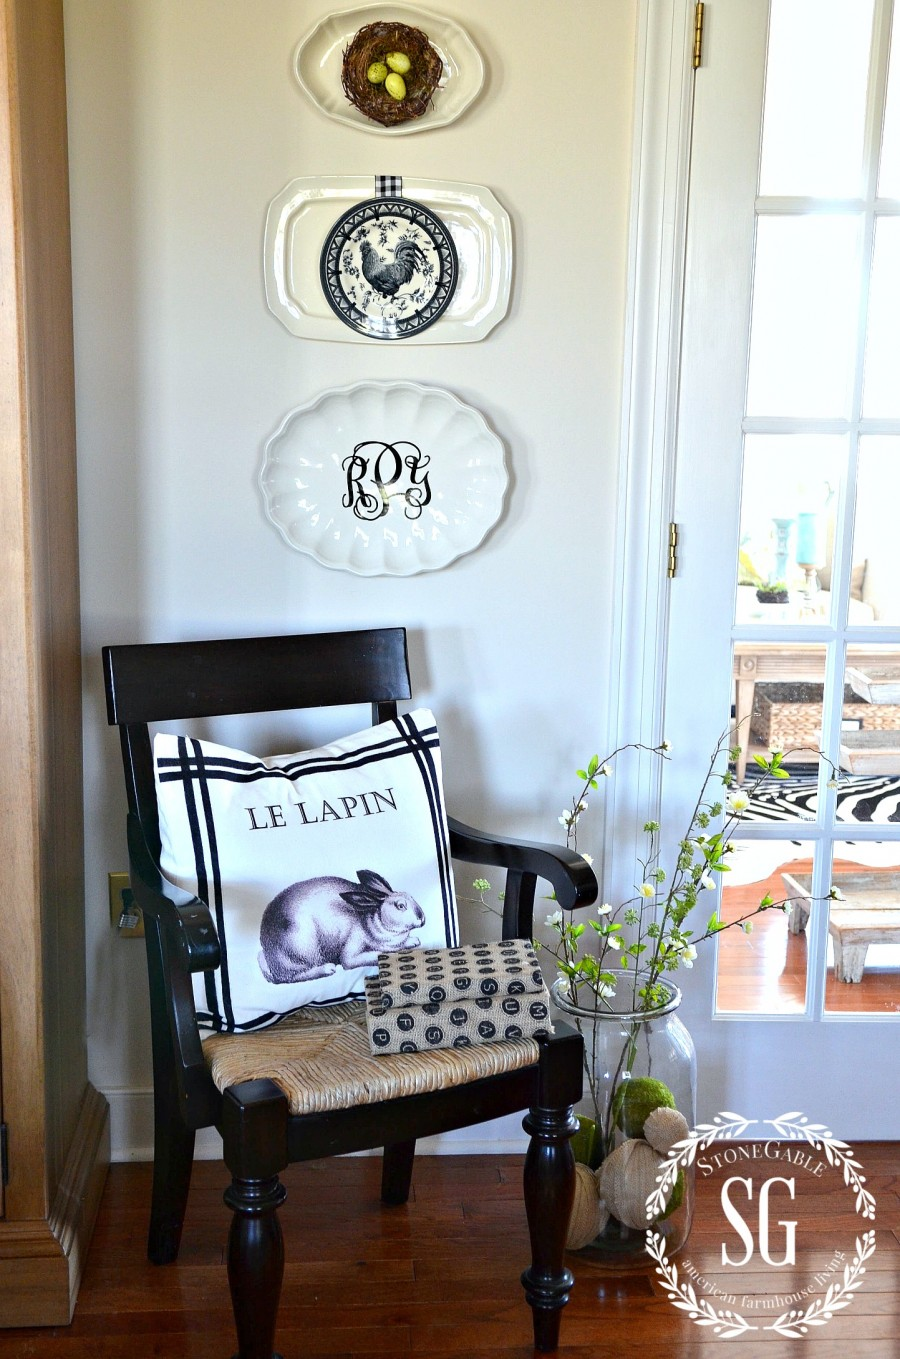 HOW TO LAYER DISH ART-wall art-embellished-stonegableblogcom